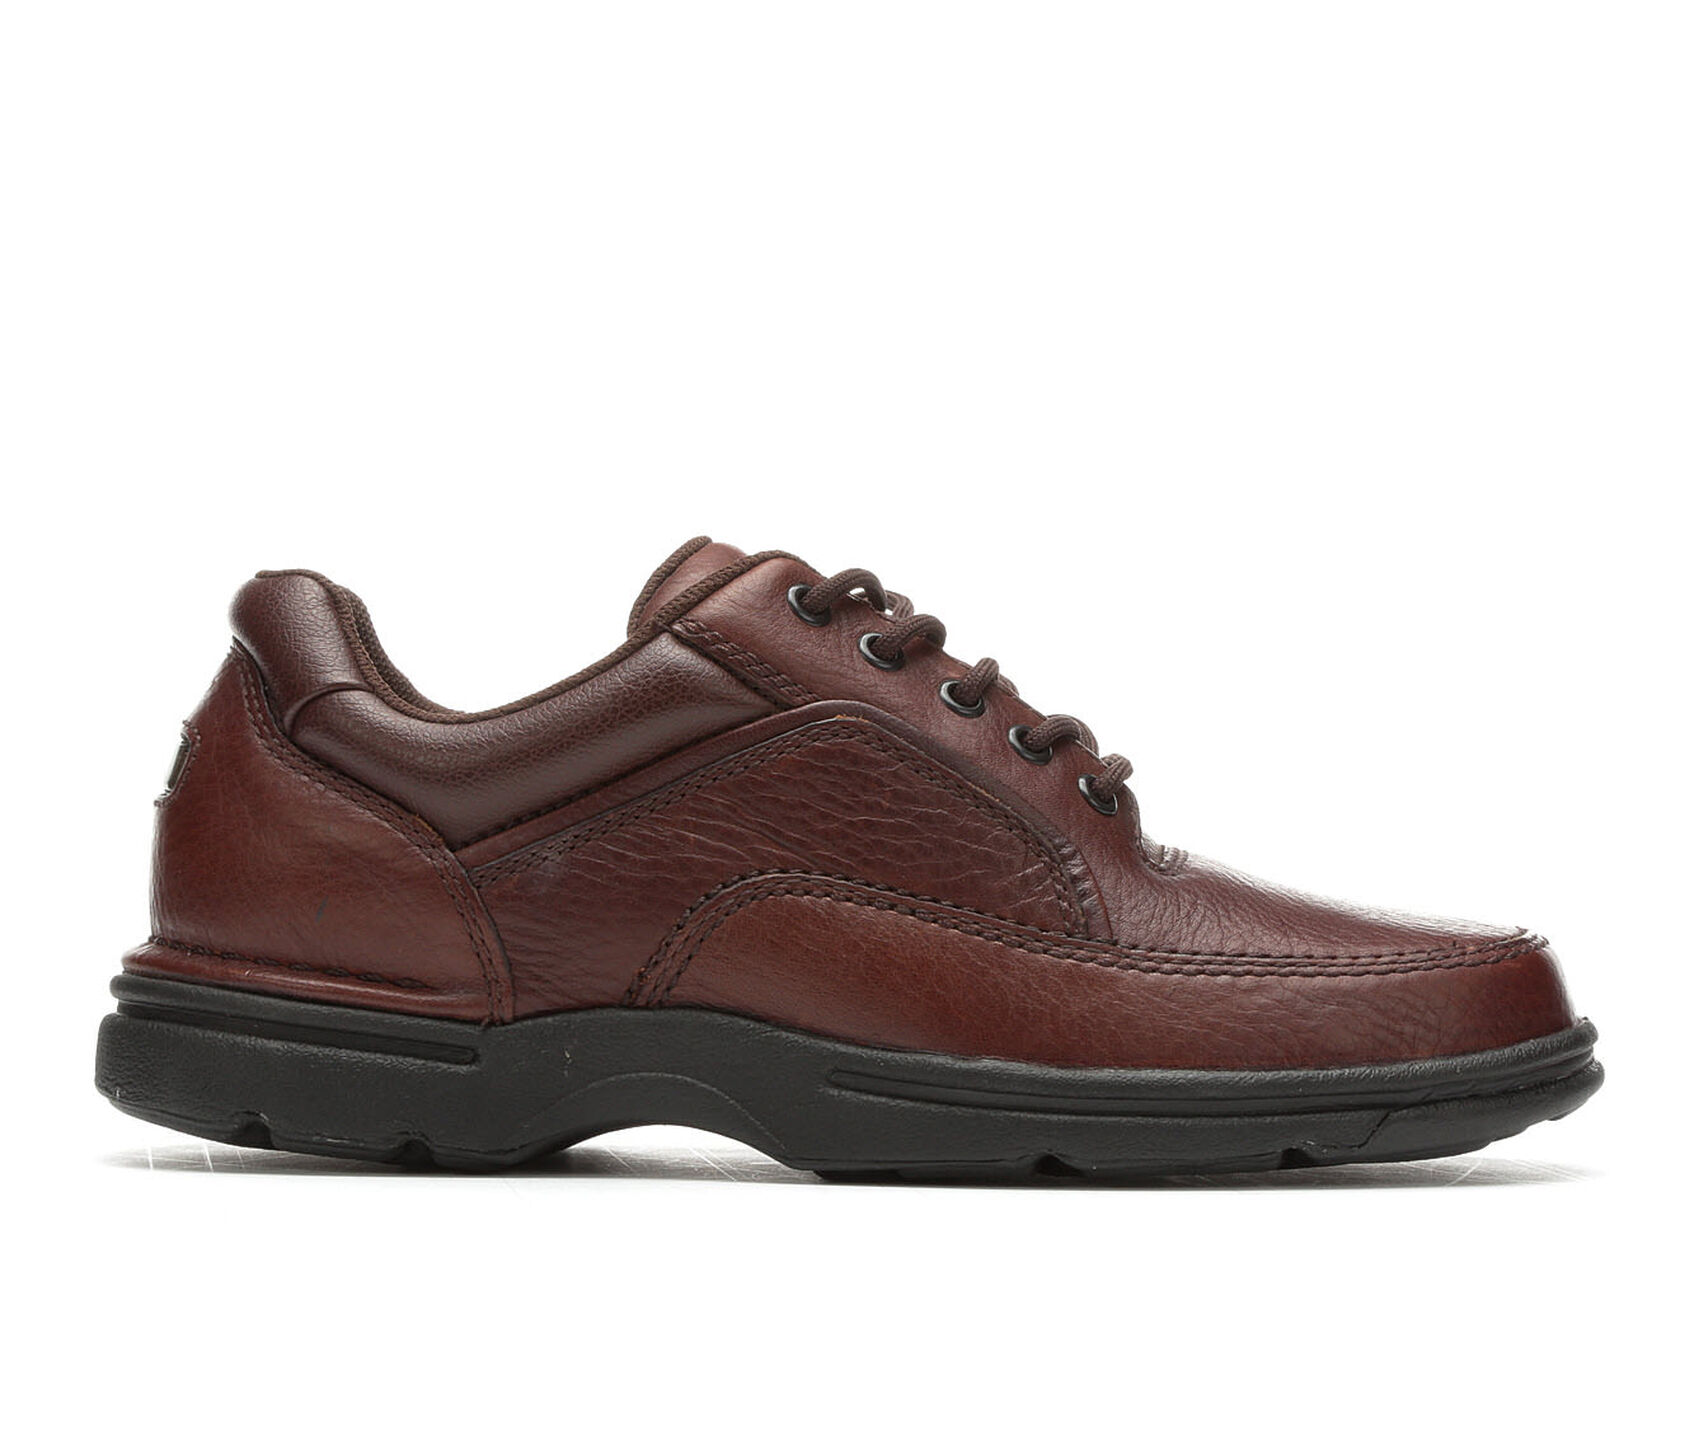 Mens Rockport Shoes Coupon